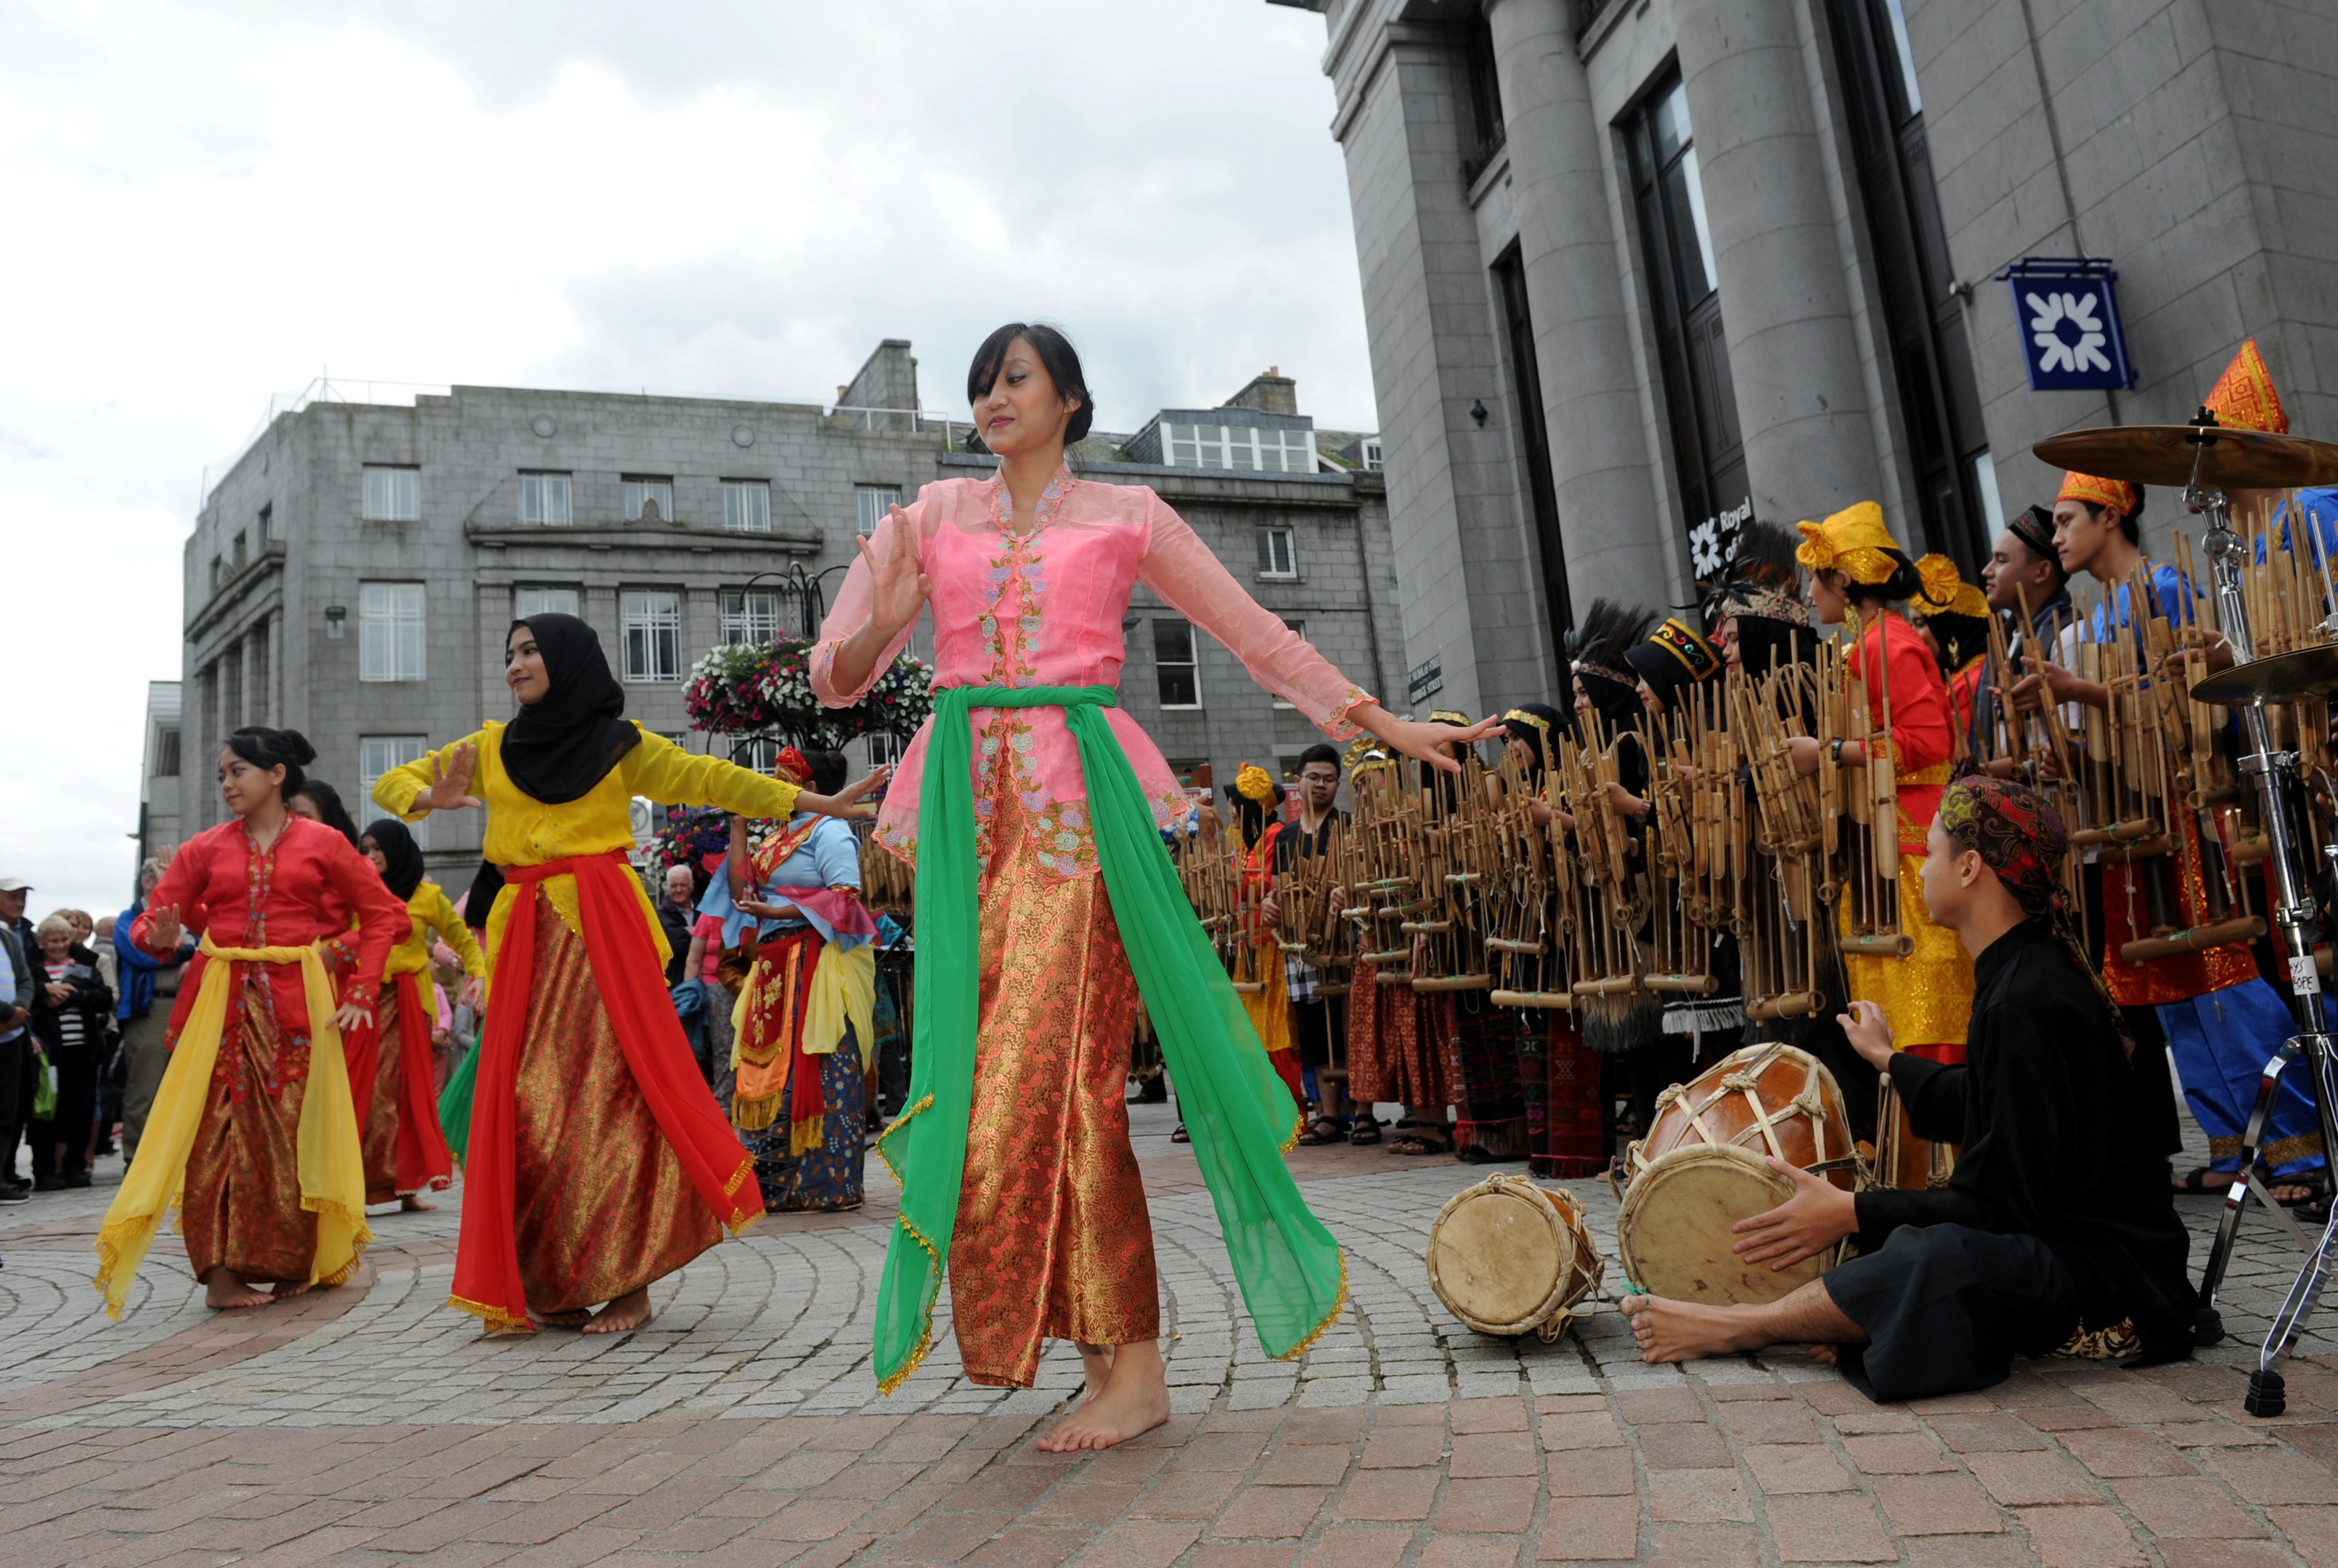 The Tim Muhibah Angklung Group were among performers taking part in the festival launch events across the city.